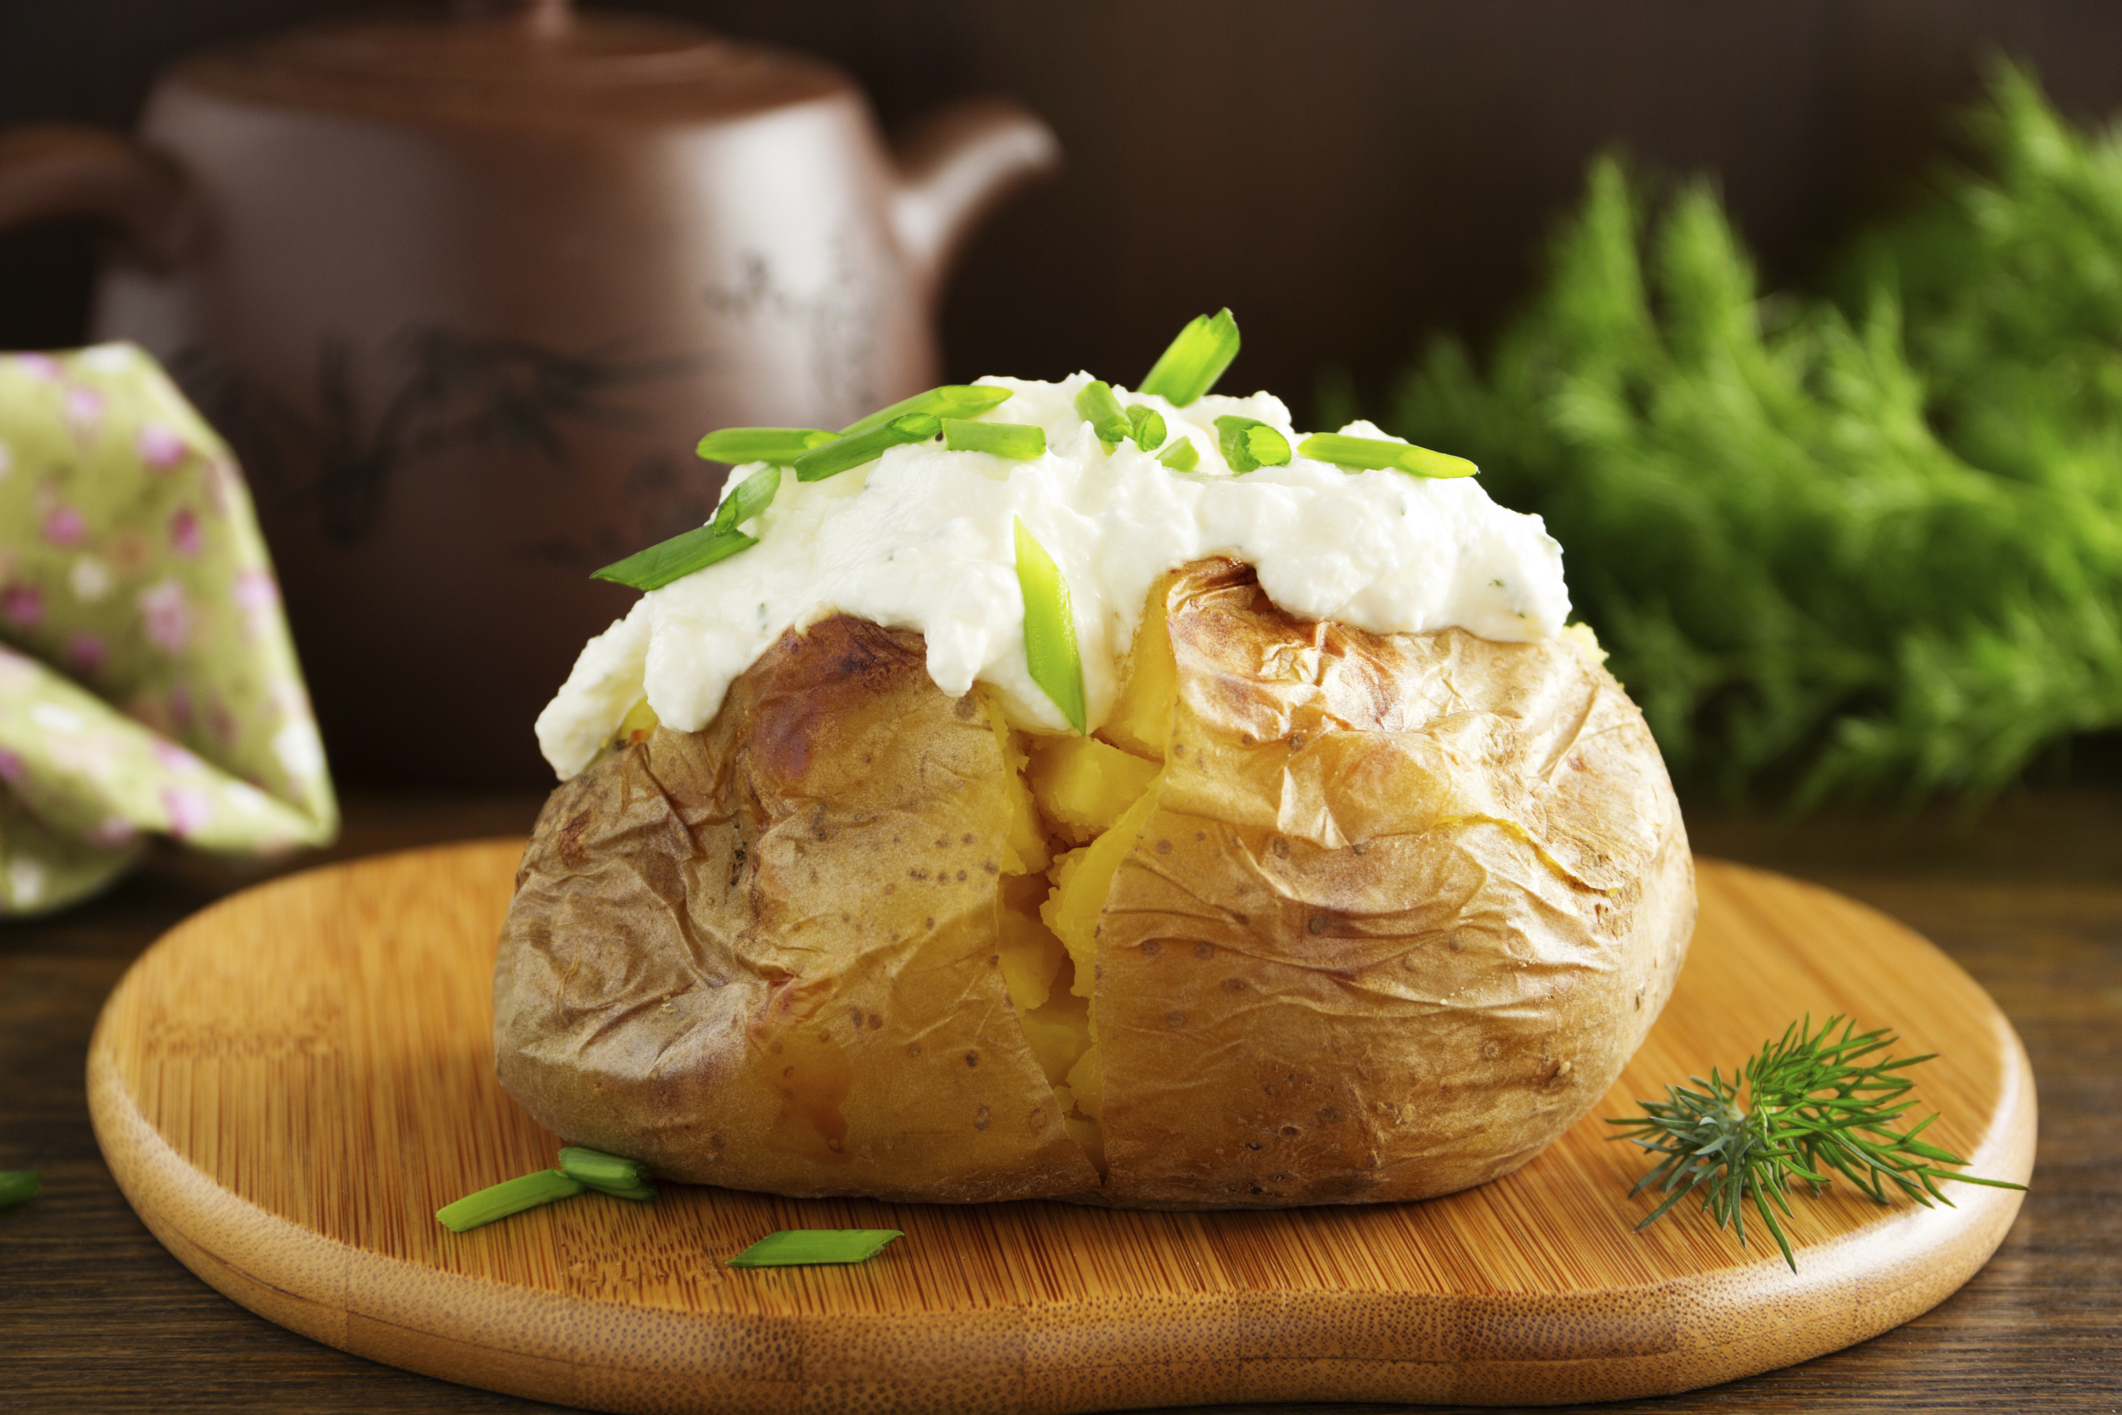 How to heat frozen stuffed baked potatoes livestrong ccuart Choice Image